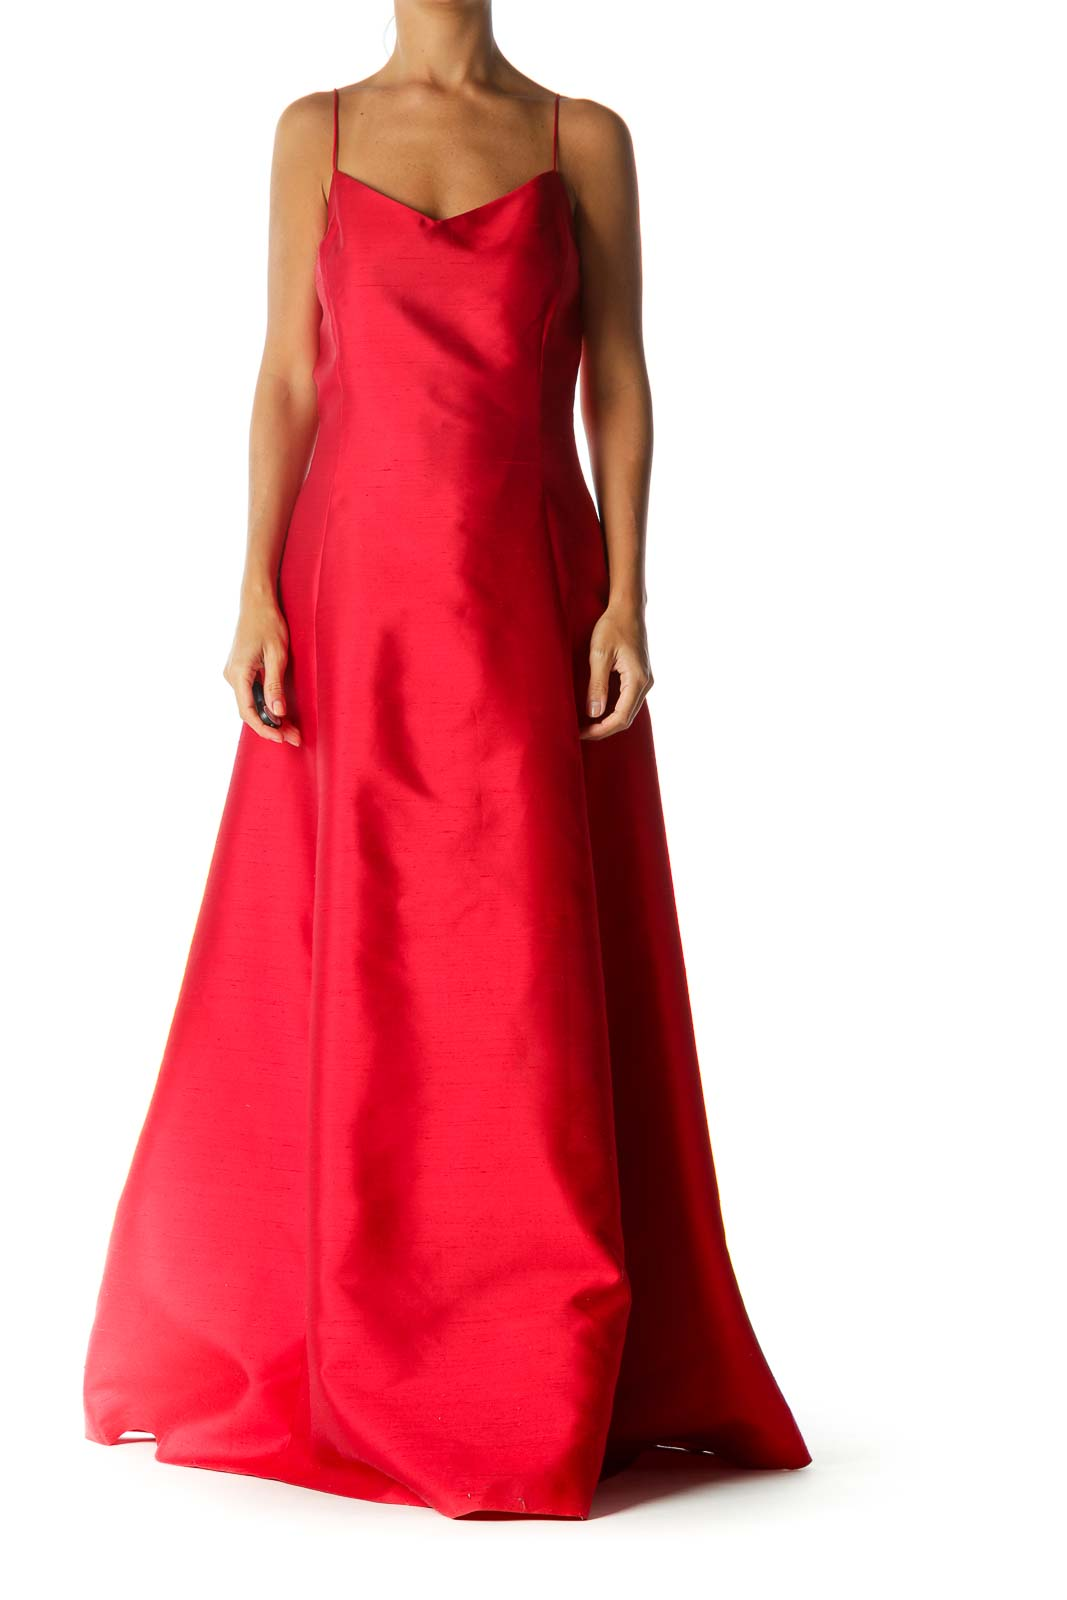 Red Silk Blend Sweetheart Neckline Spaghetti Strap Back V-Neck Evening Dress